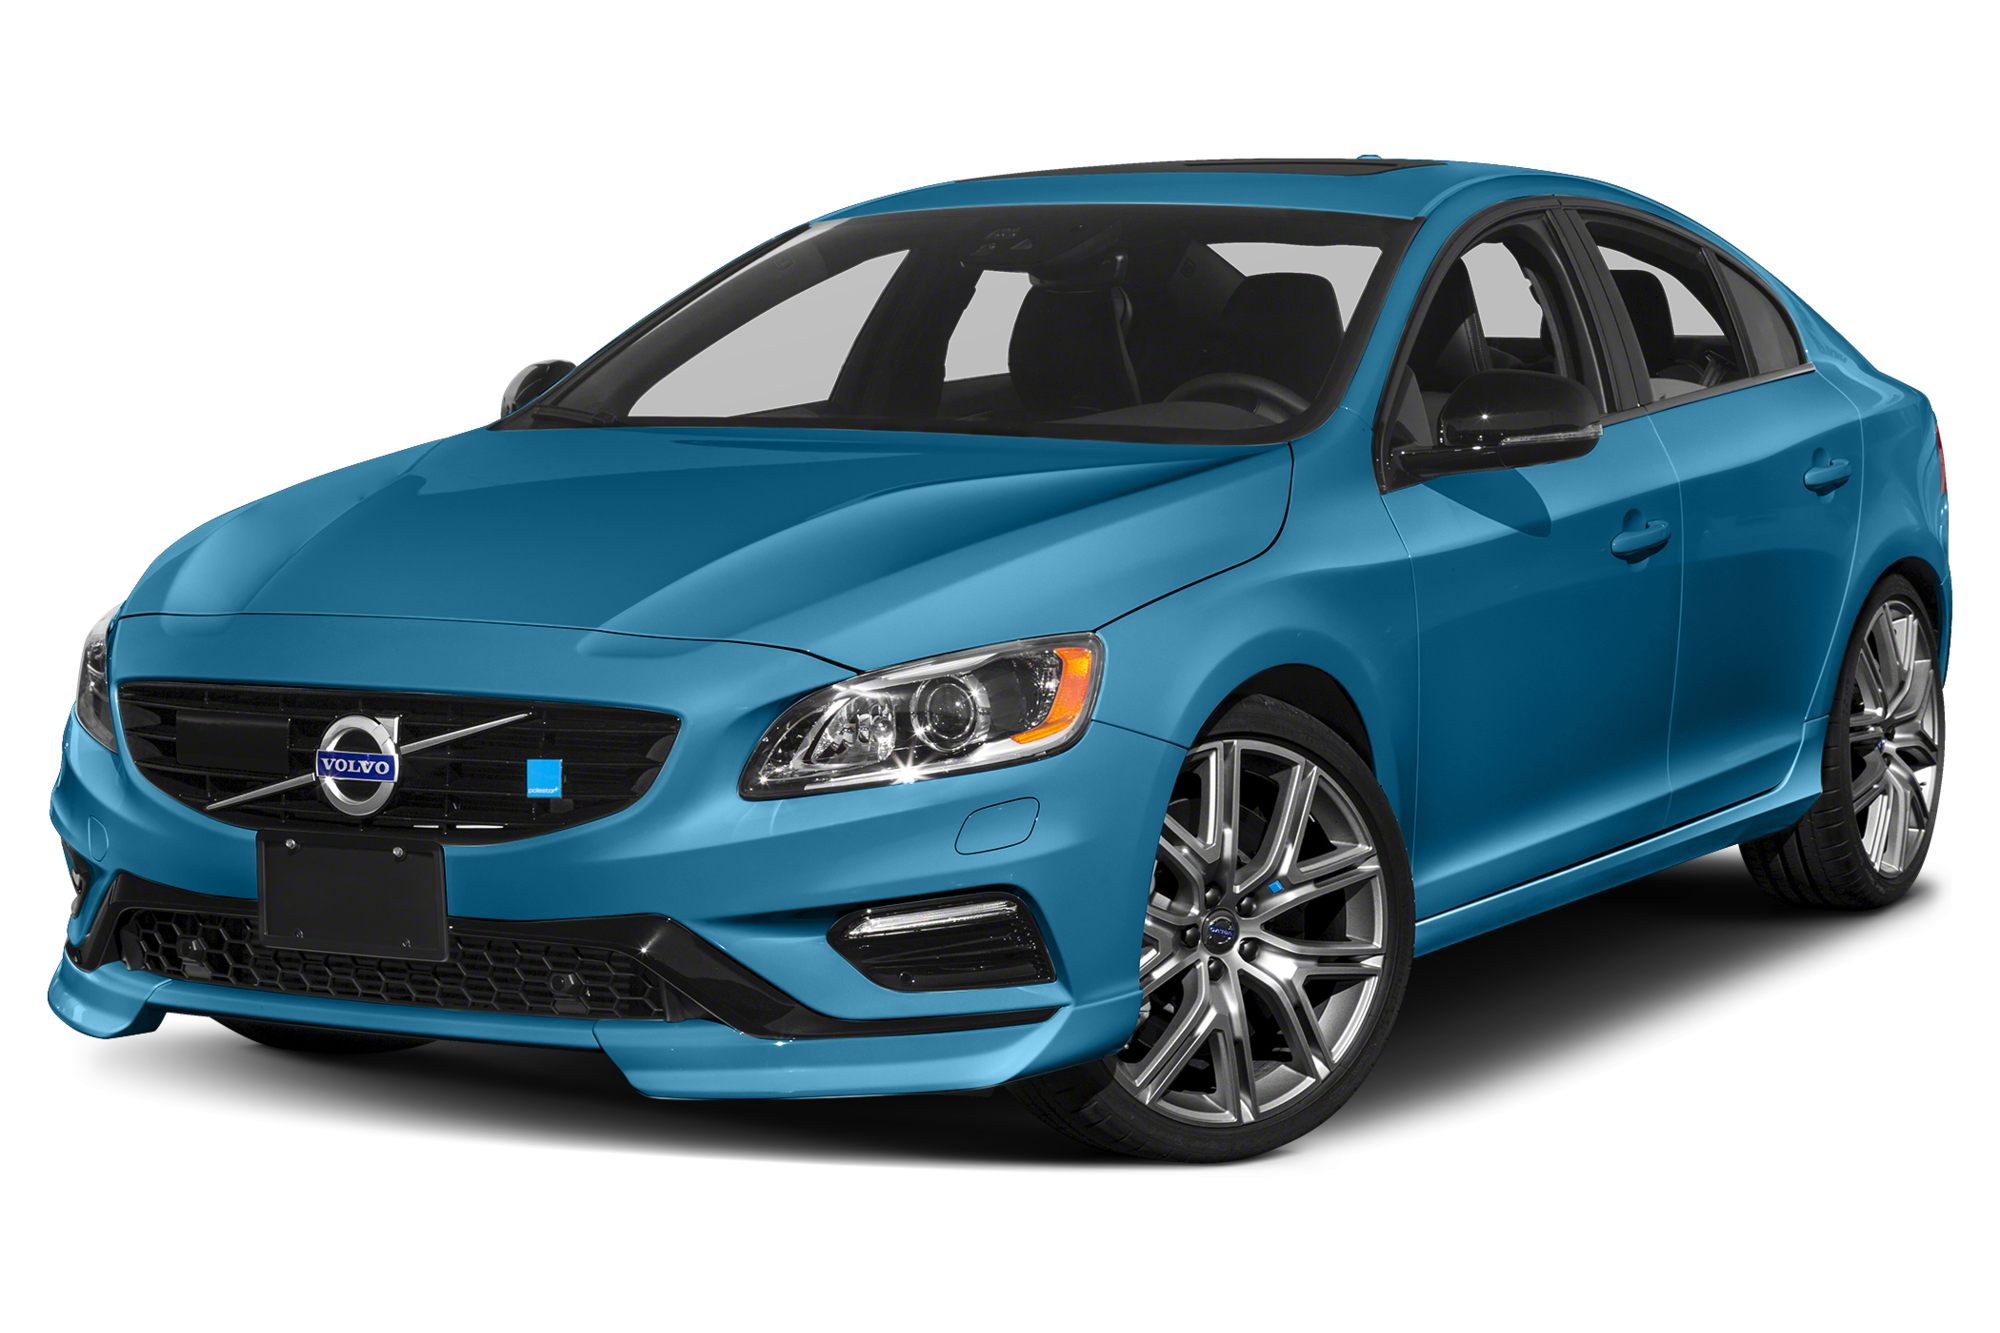 2011-2017 Volvo S60, S60 Cross Country, V60, V60 Cross Country: Recall Alert